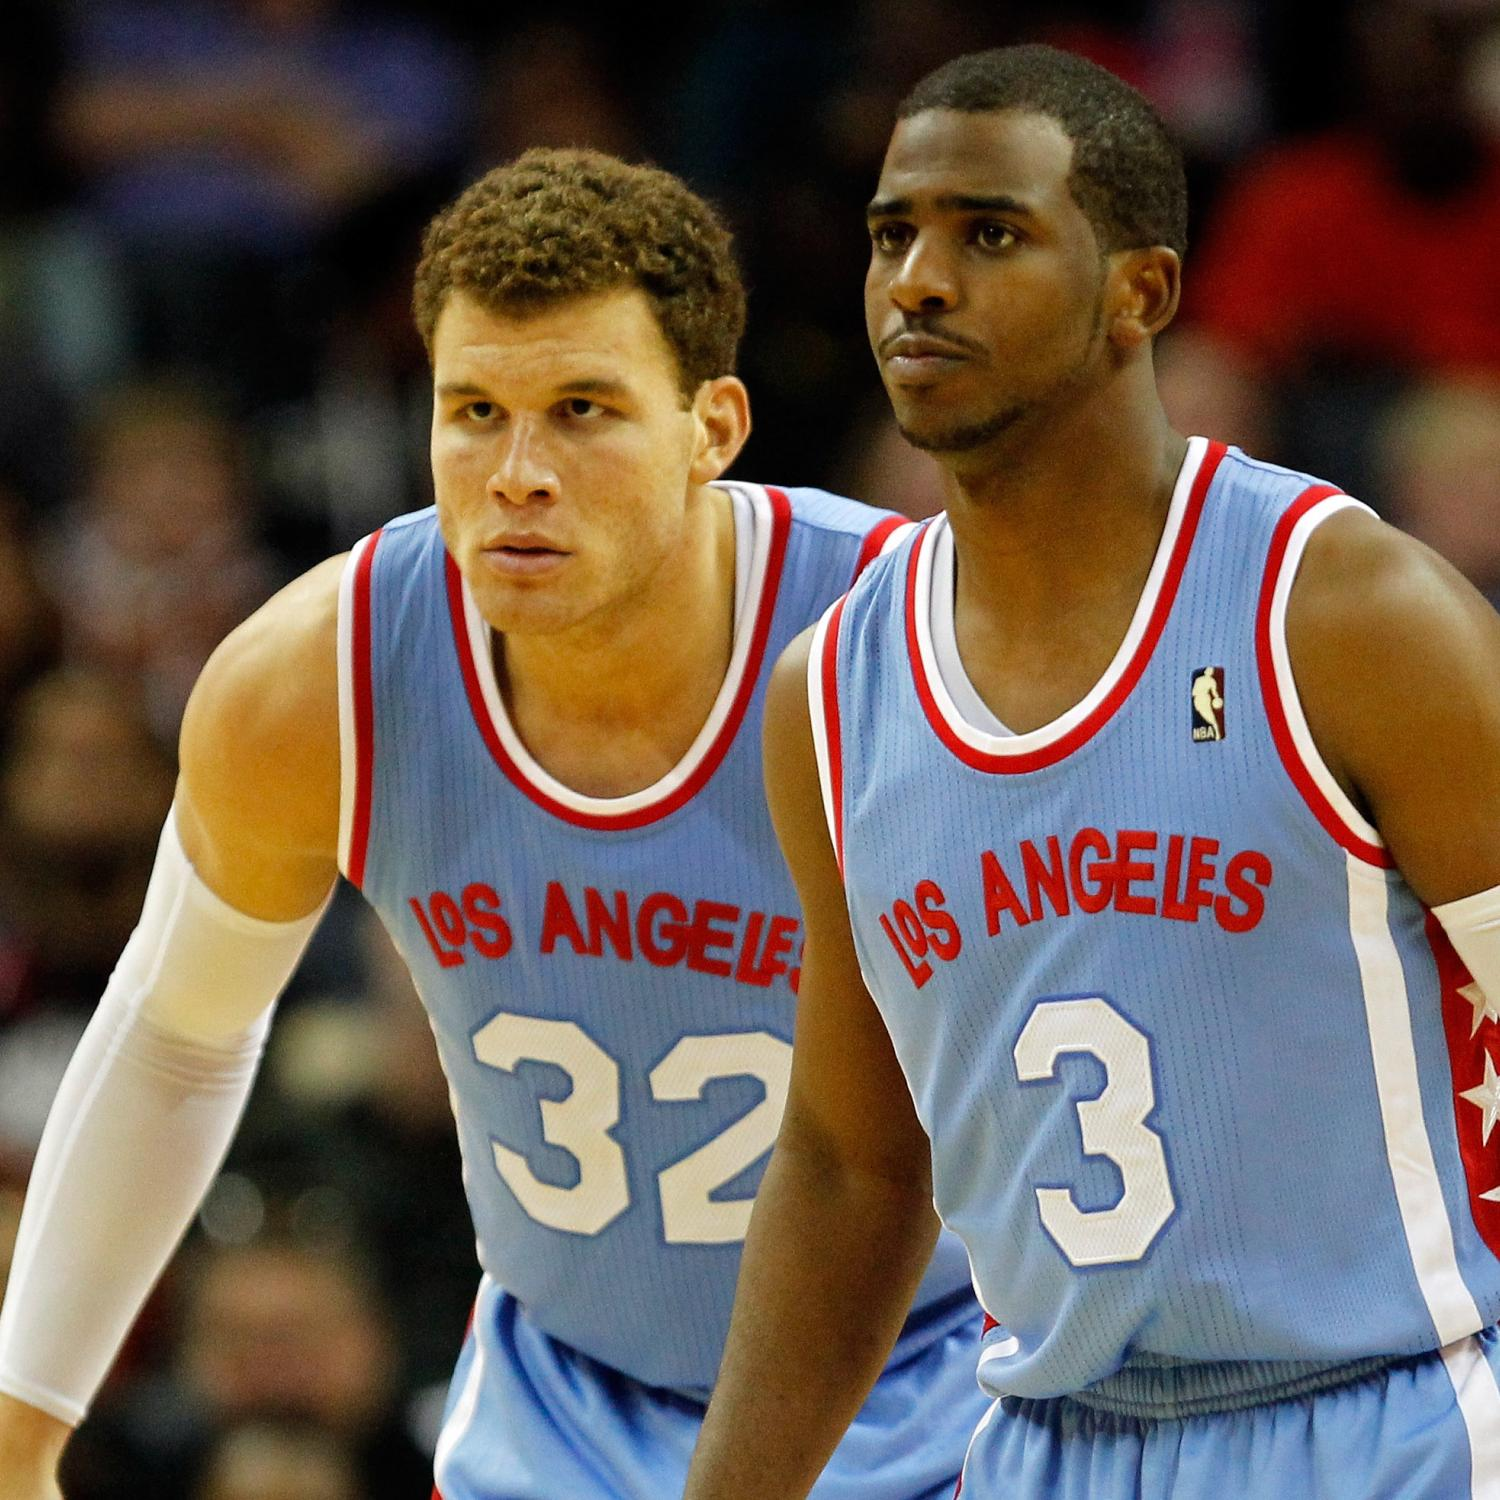 4. Los Angeles Clippers